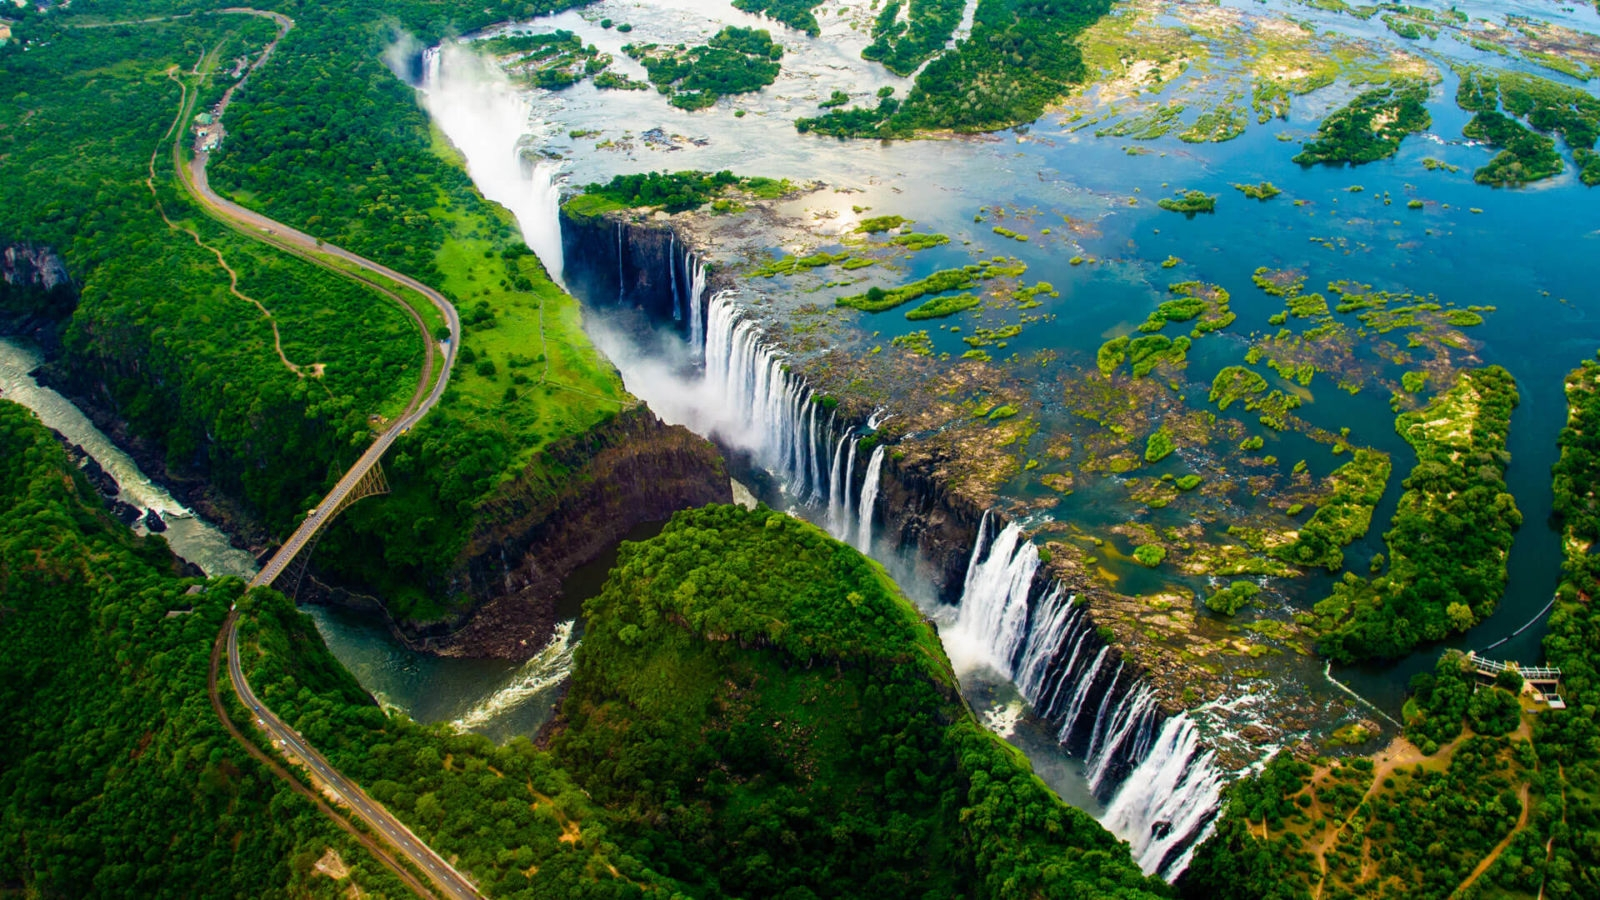 Discover The 7 Natural Wonders Of The World